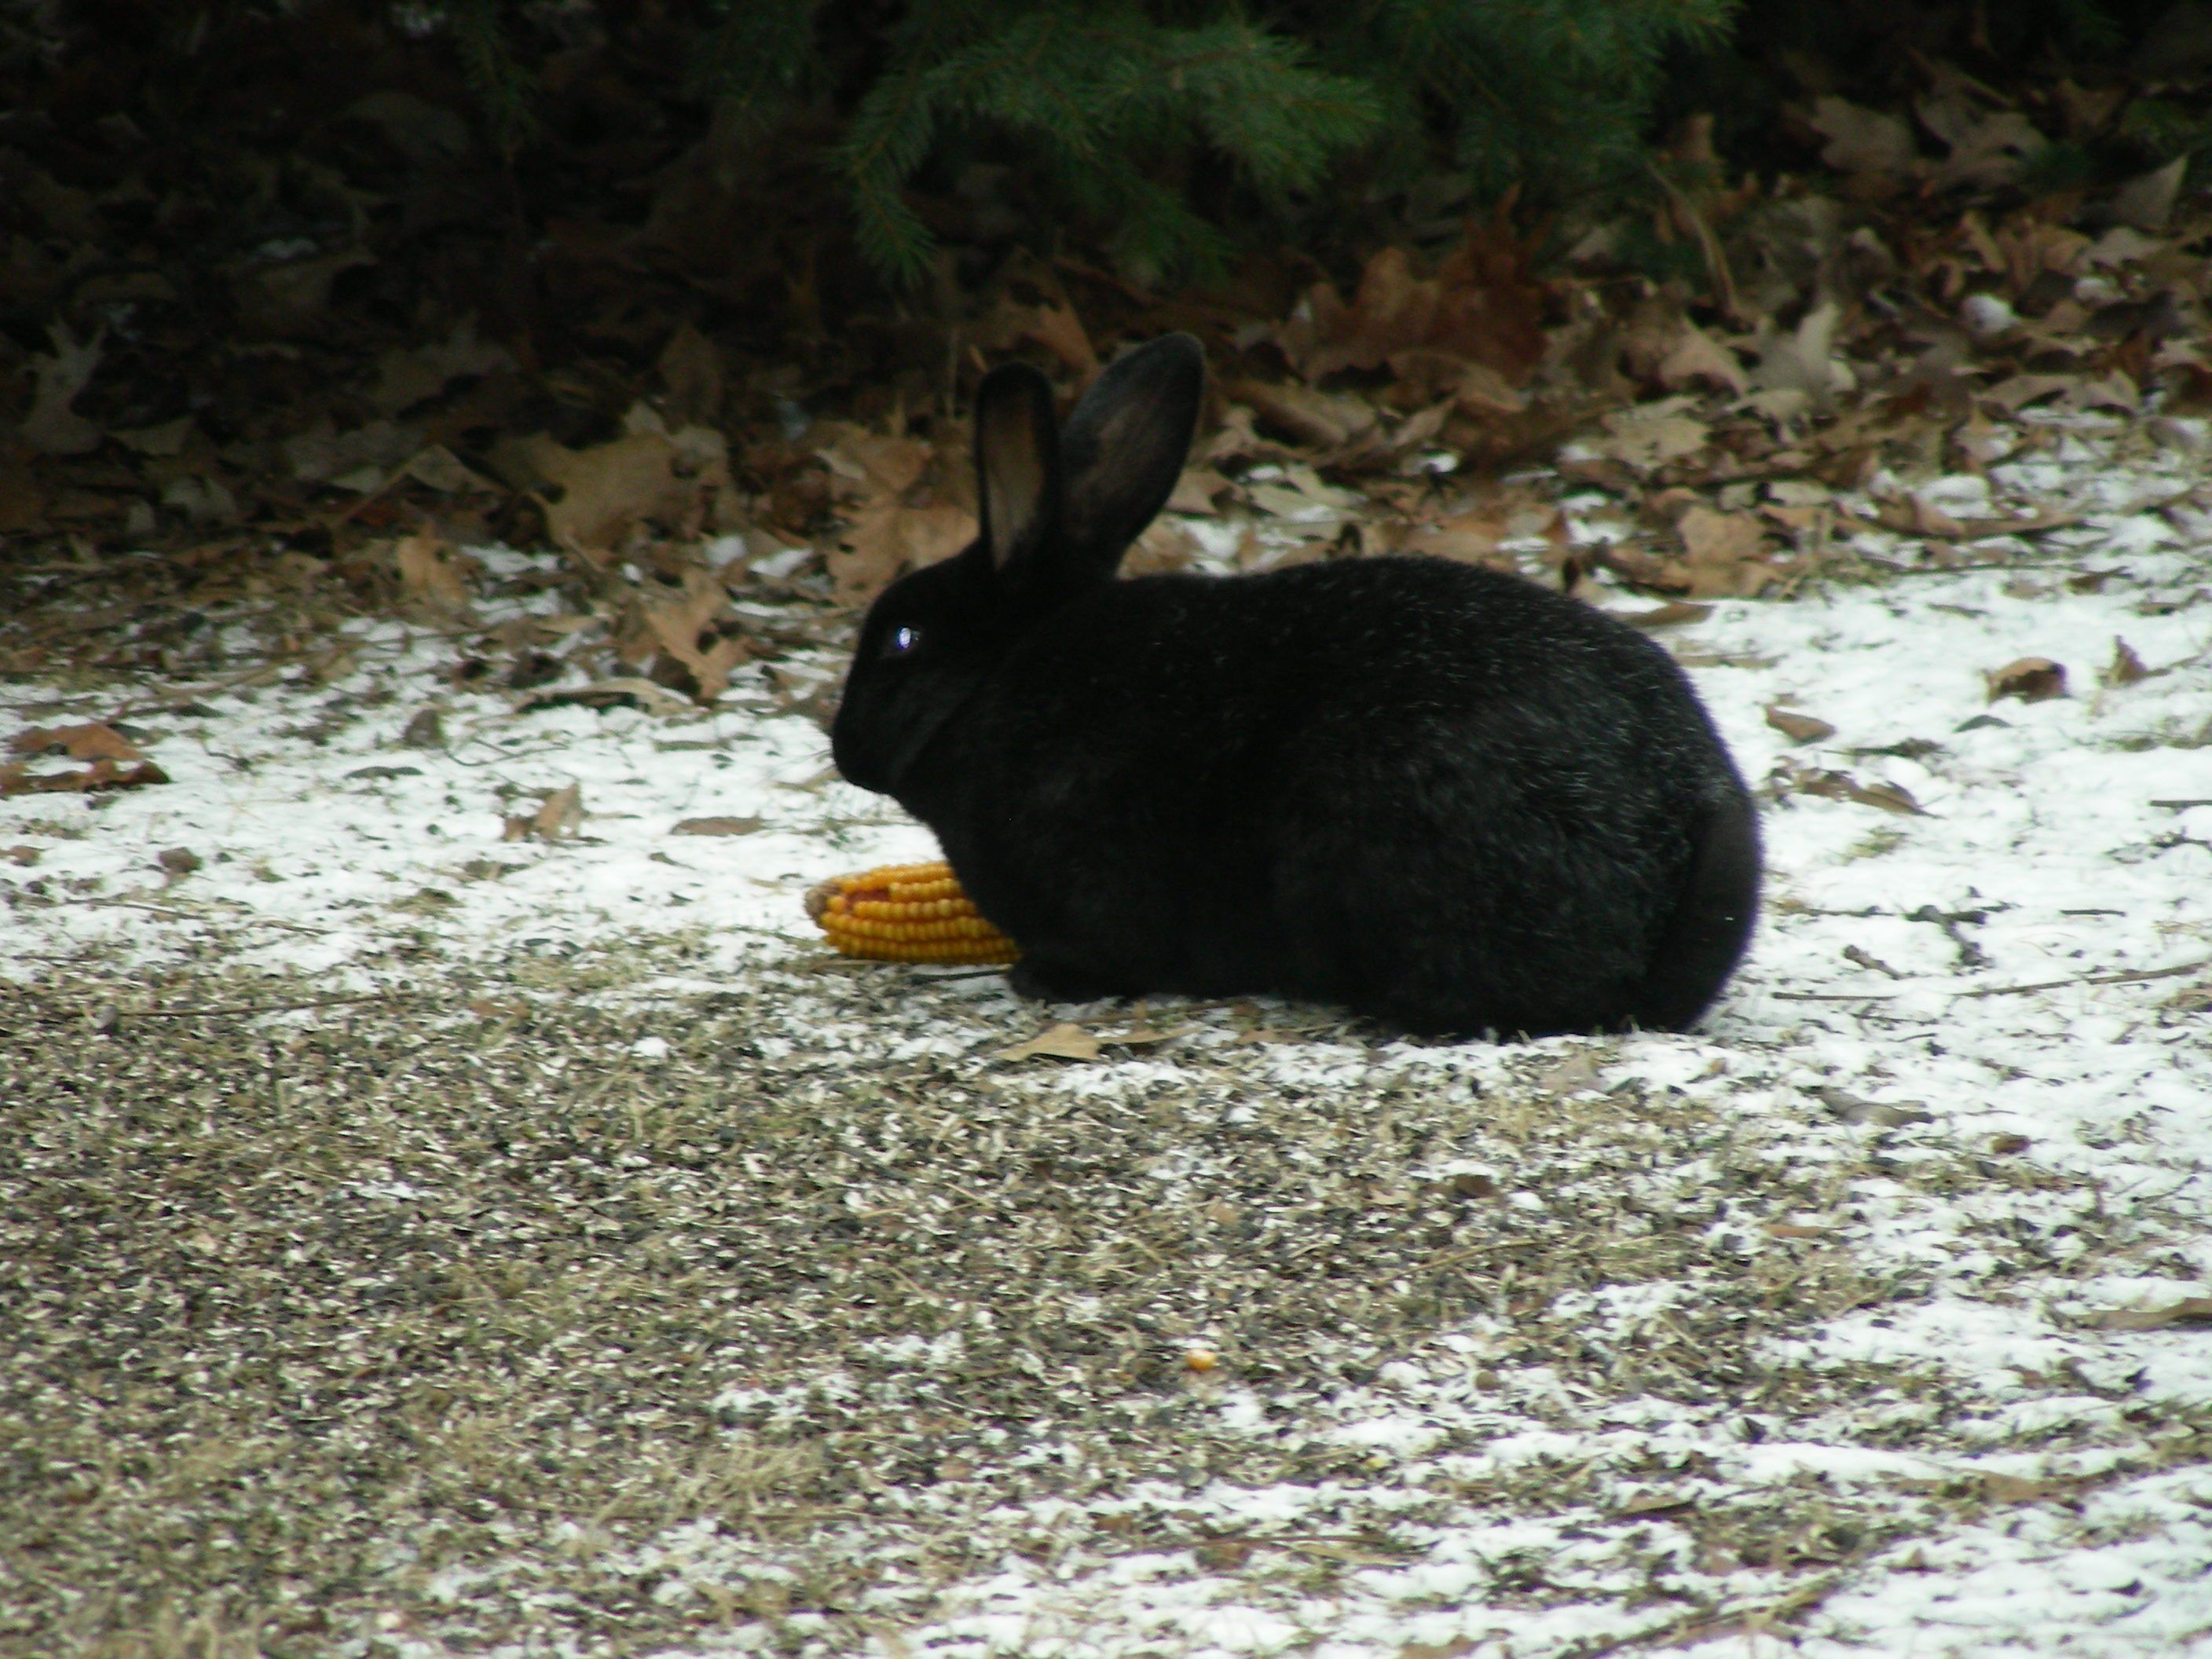 Black rabbit in my yard